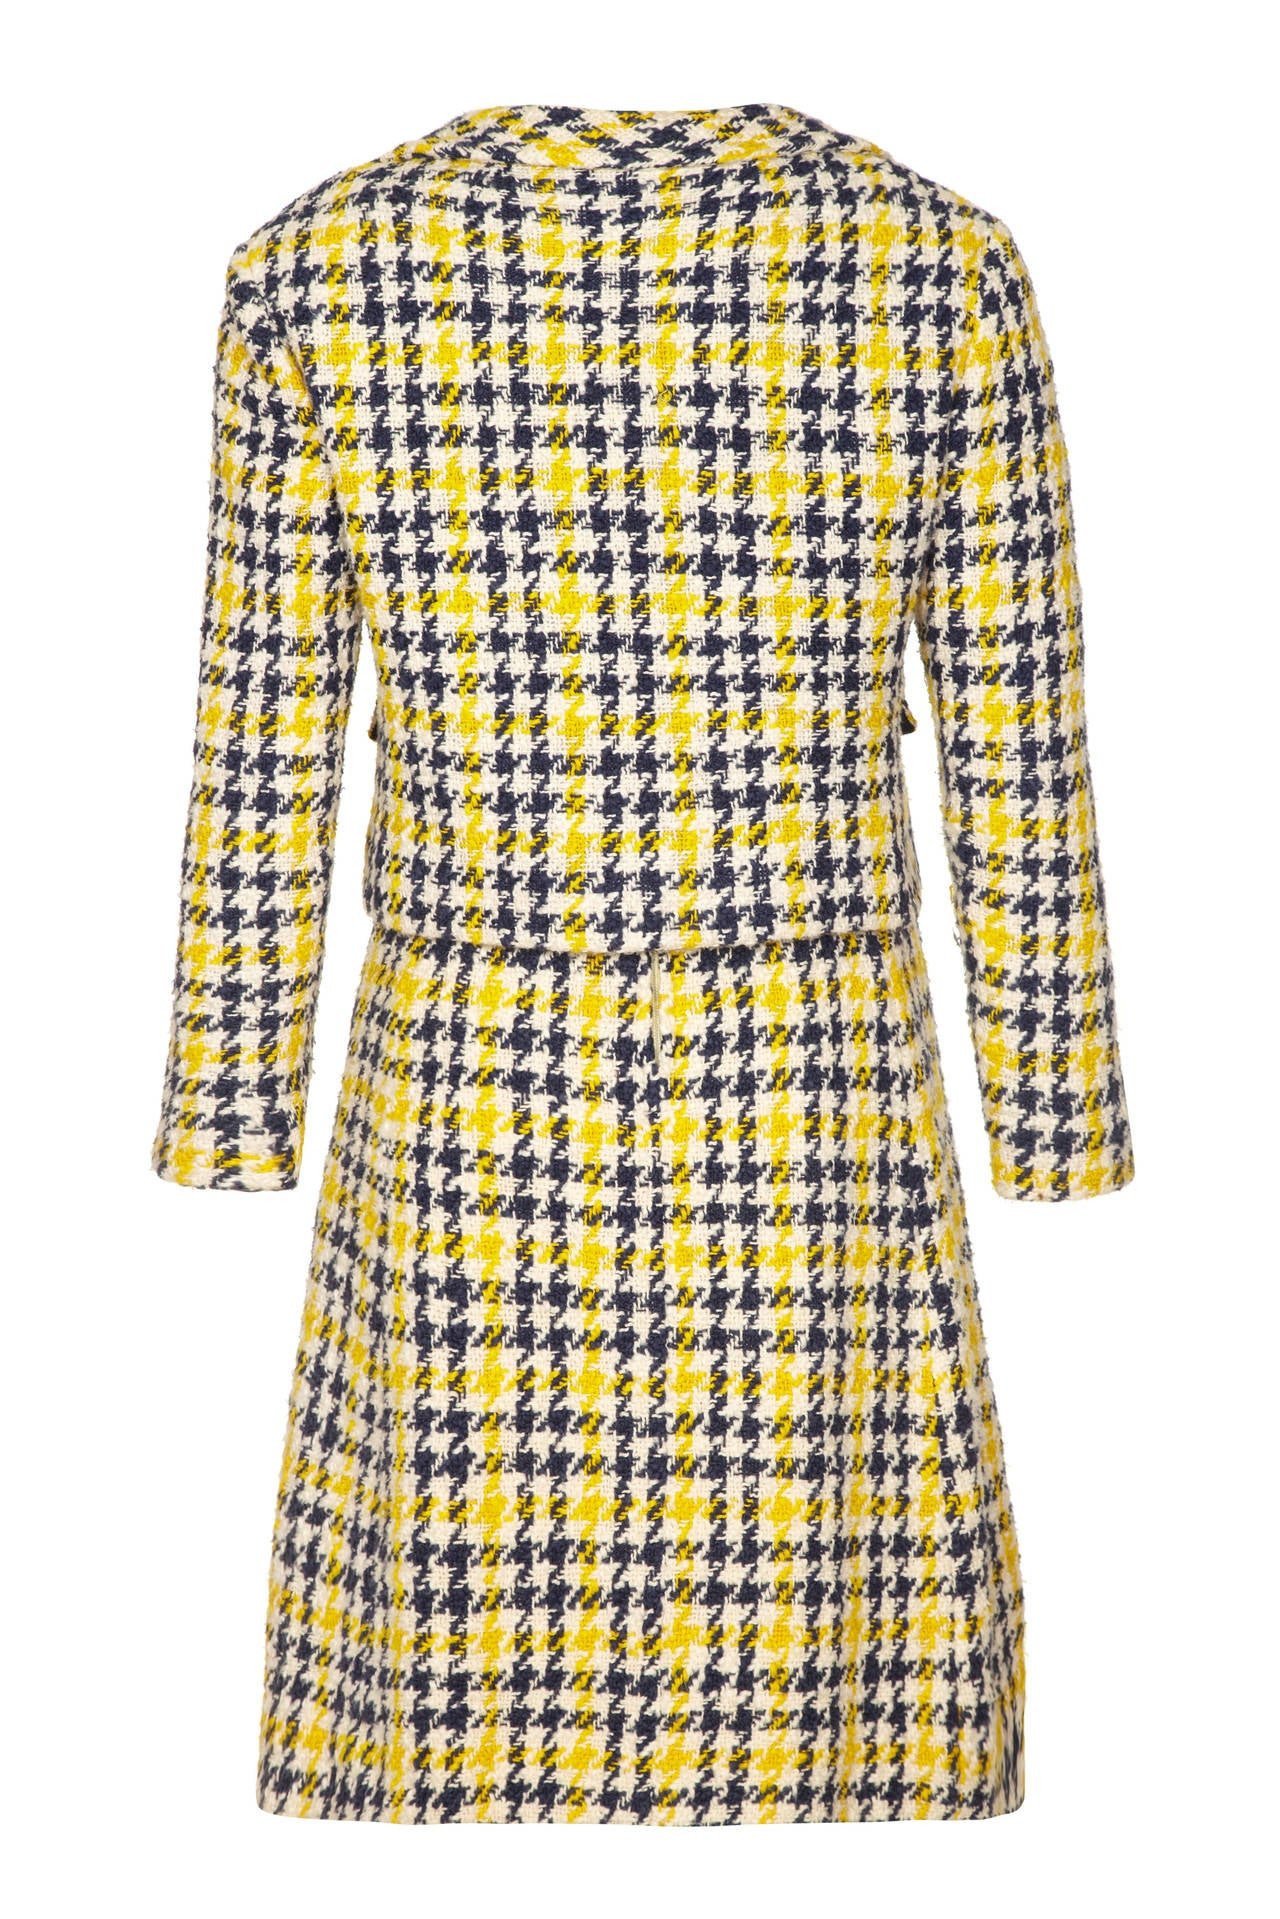 A really great little 60s number this two piece suit is made up of yellow, blue and cream tartan jacket and sleeveless dress with yellow bodice.  The jacket fastens at the front with lovely gold buttons that are also featured on the faux hip